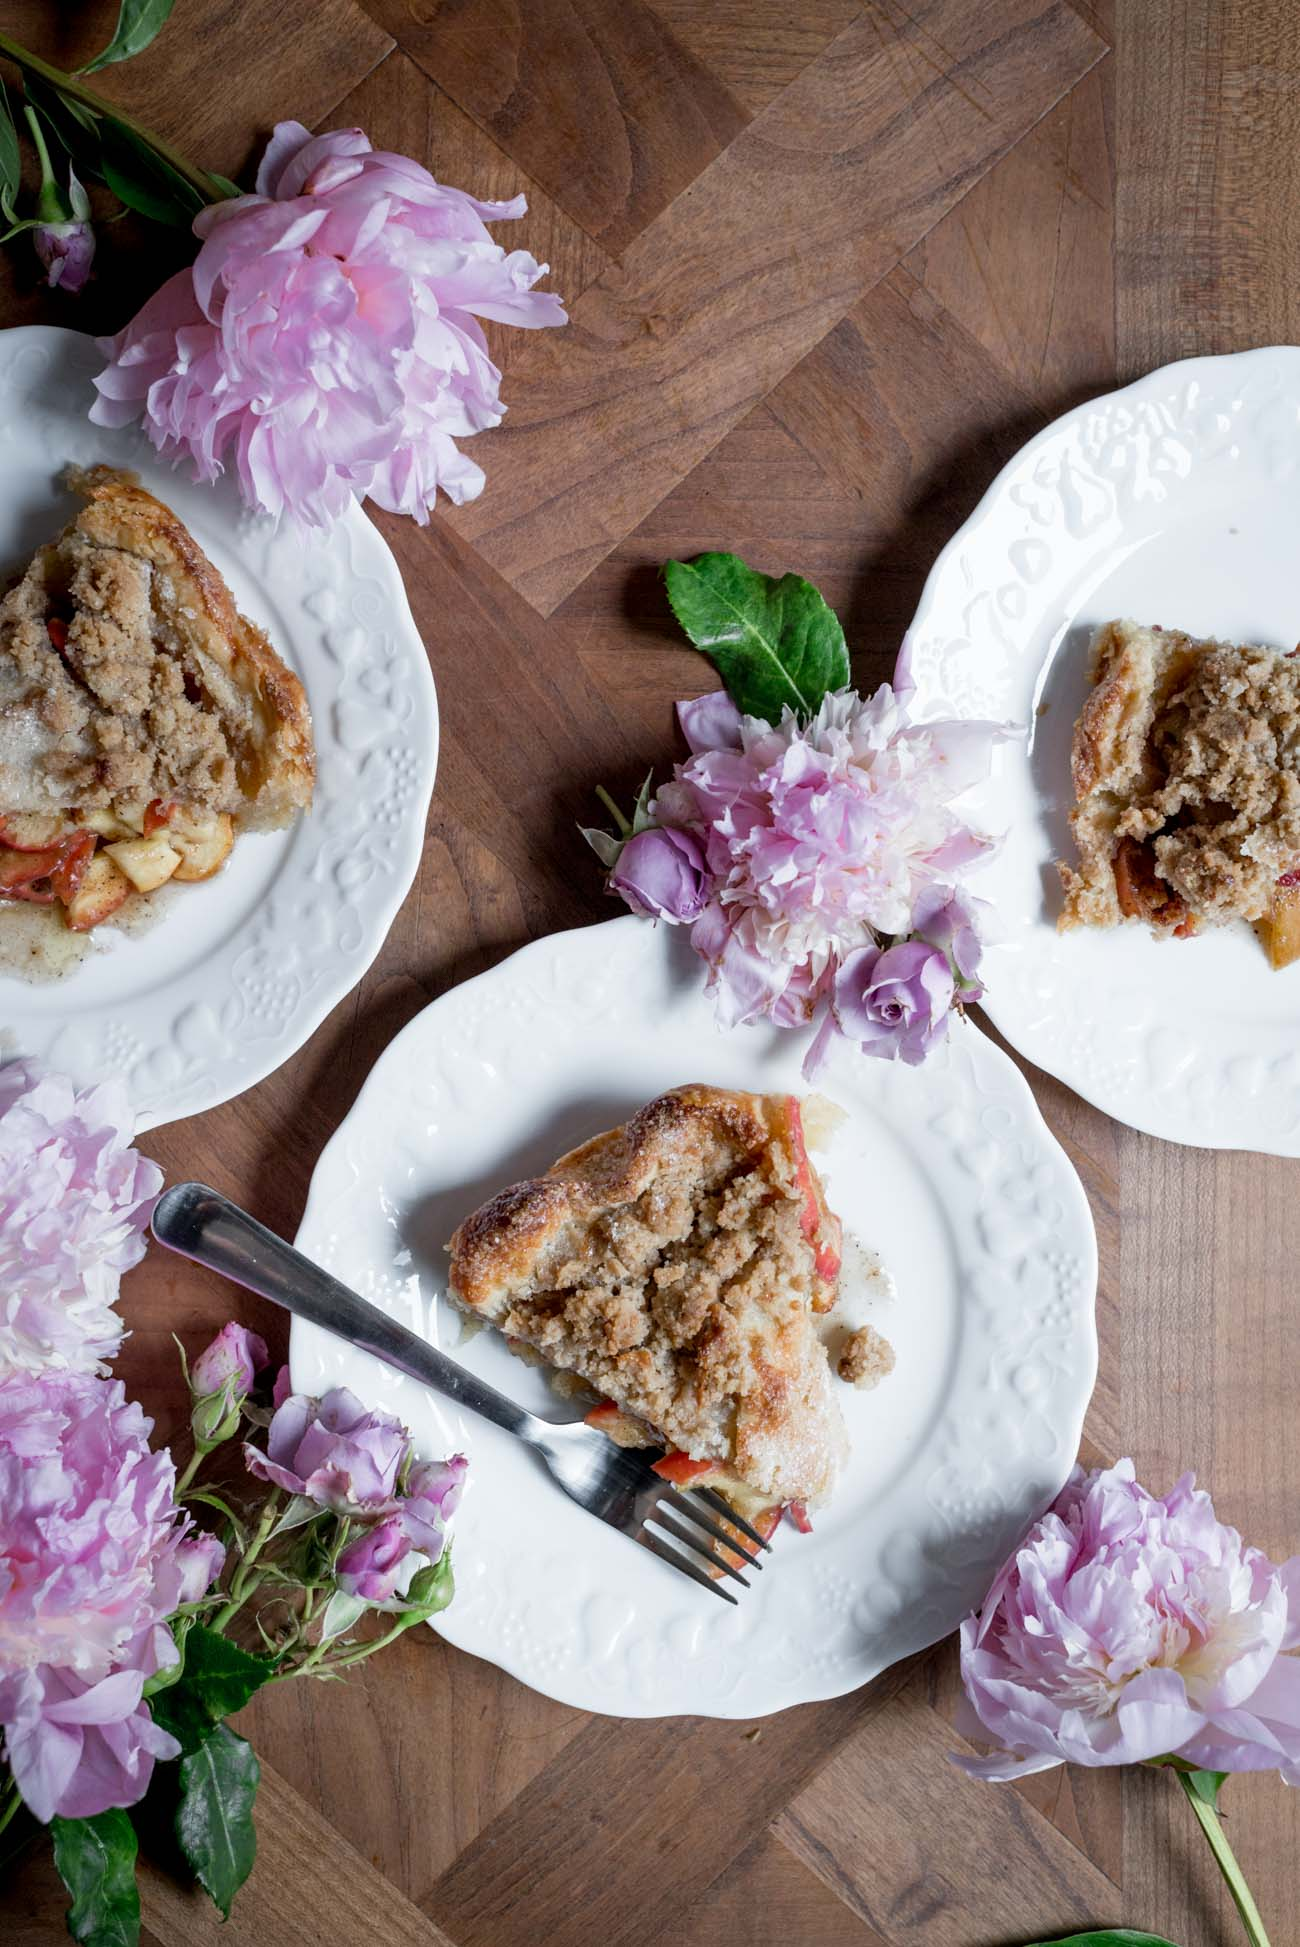 Hazelnut-Streusel-Apple-Pie-with-Brown-Butter-3.jpg